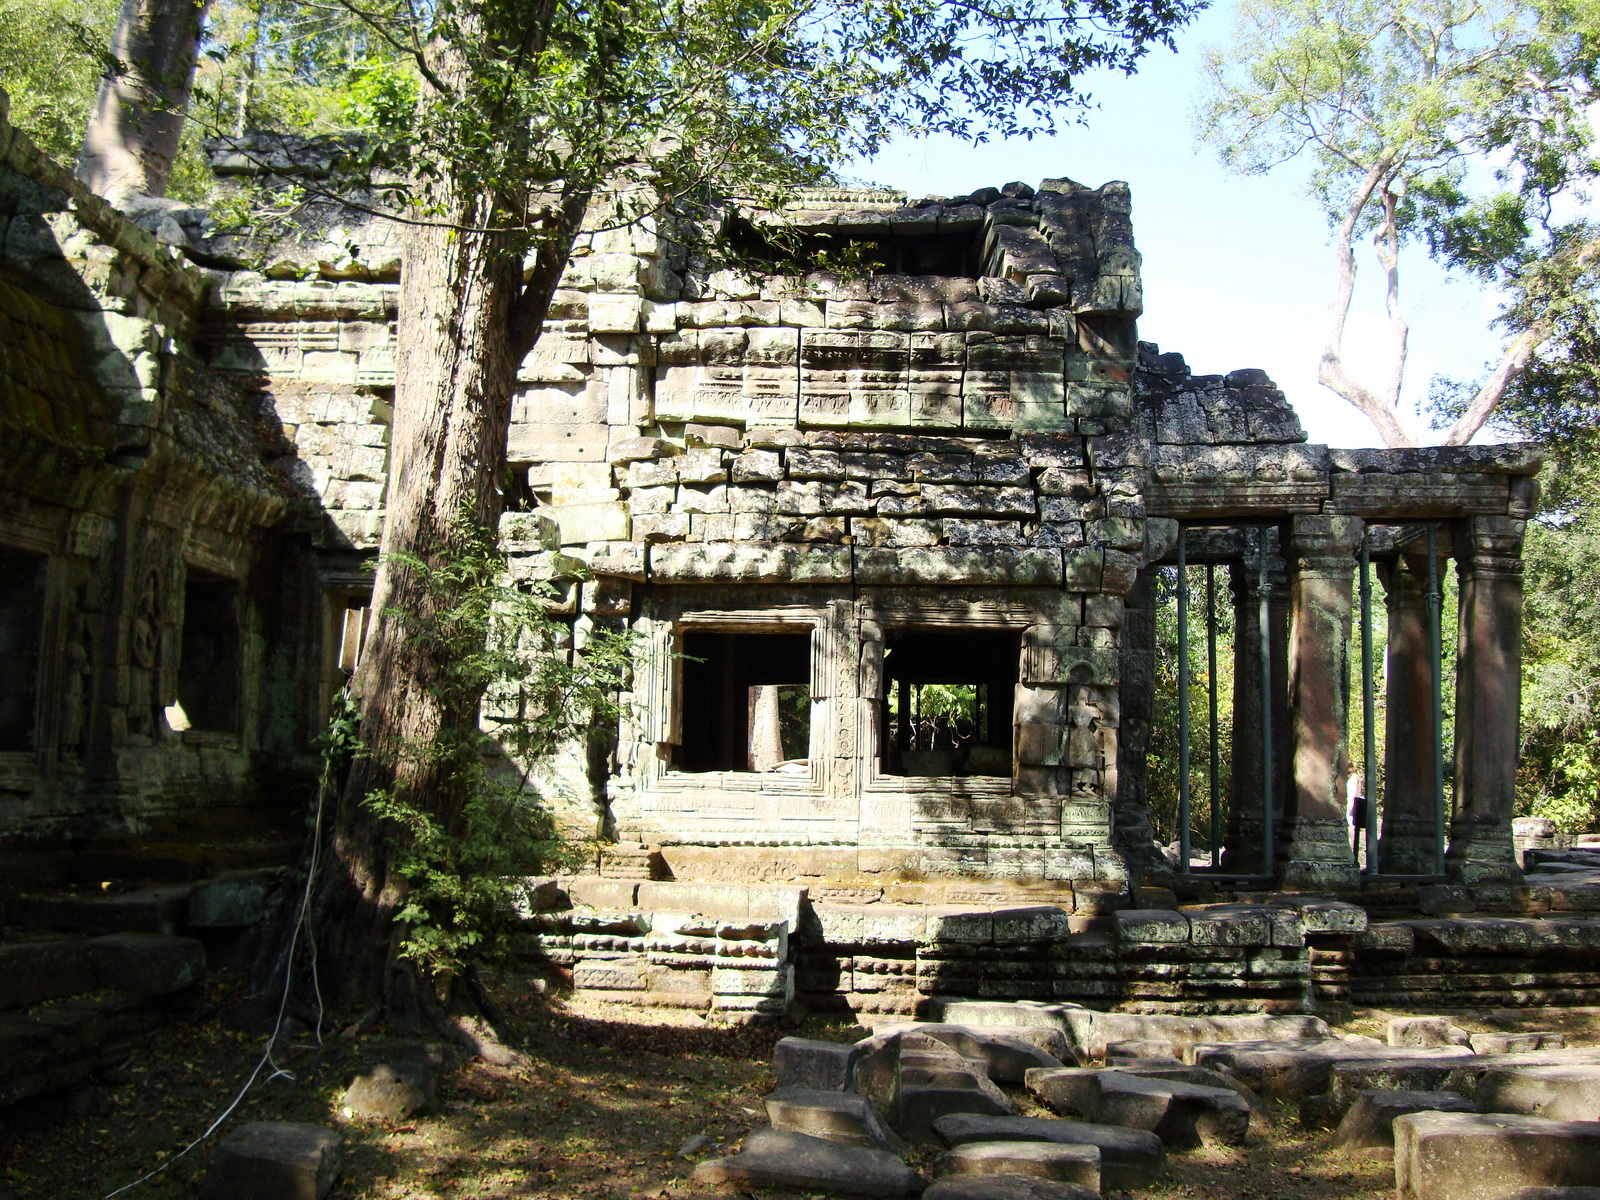 Ta Prohm Tomb Raider Bayon architecture Gopura 4 East entrance 09